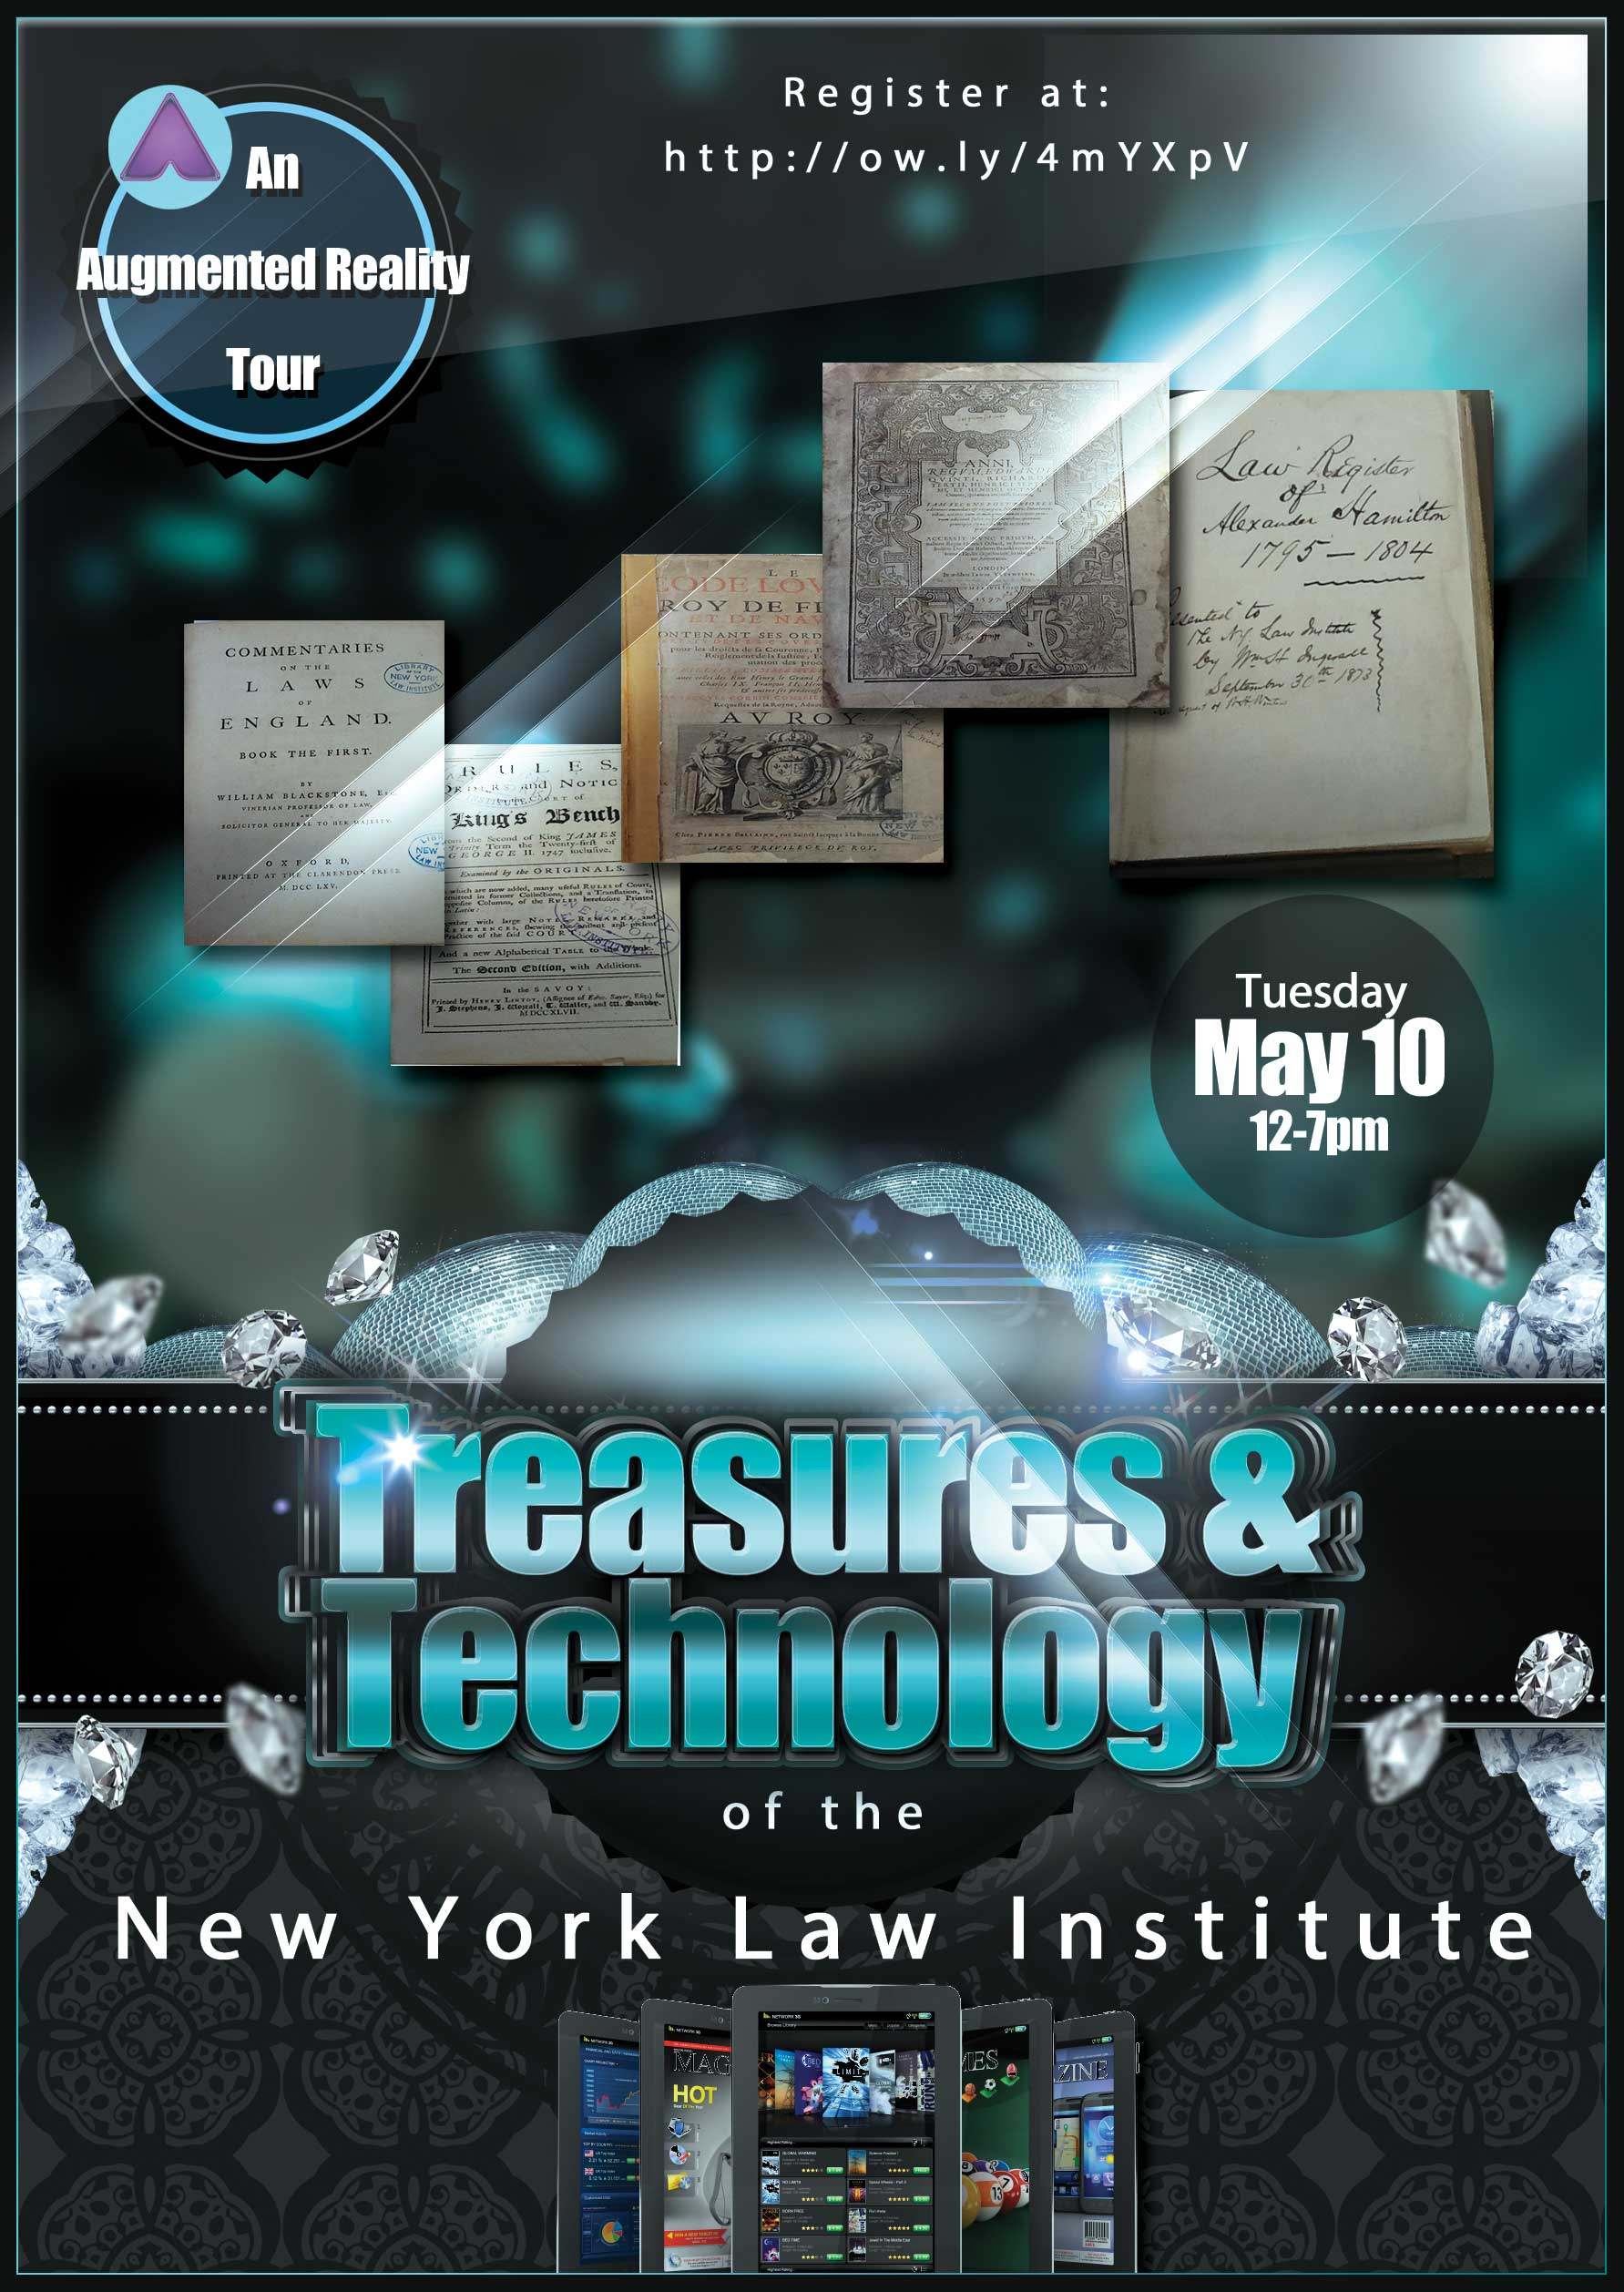 NYLI_treasures_tech_flyer_2016_2web